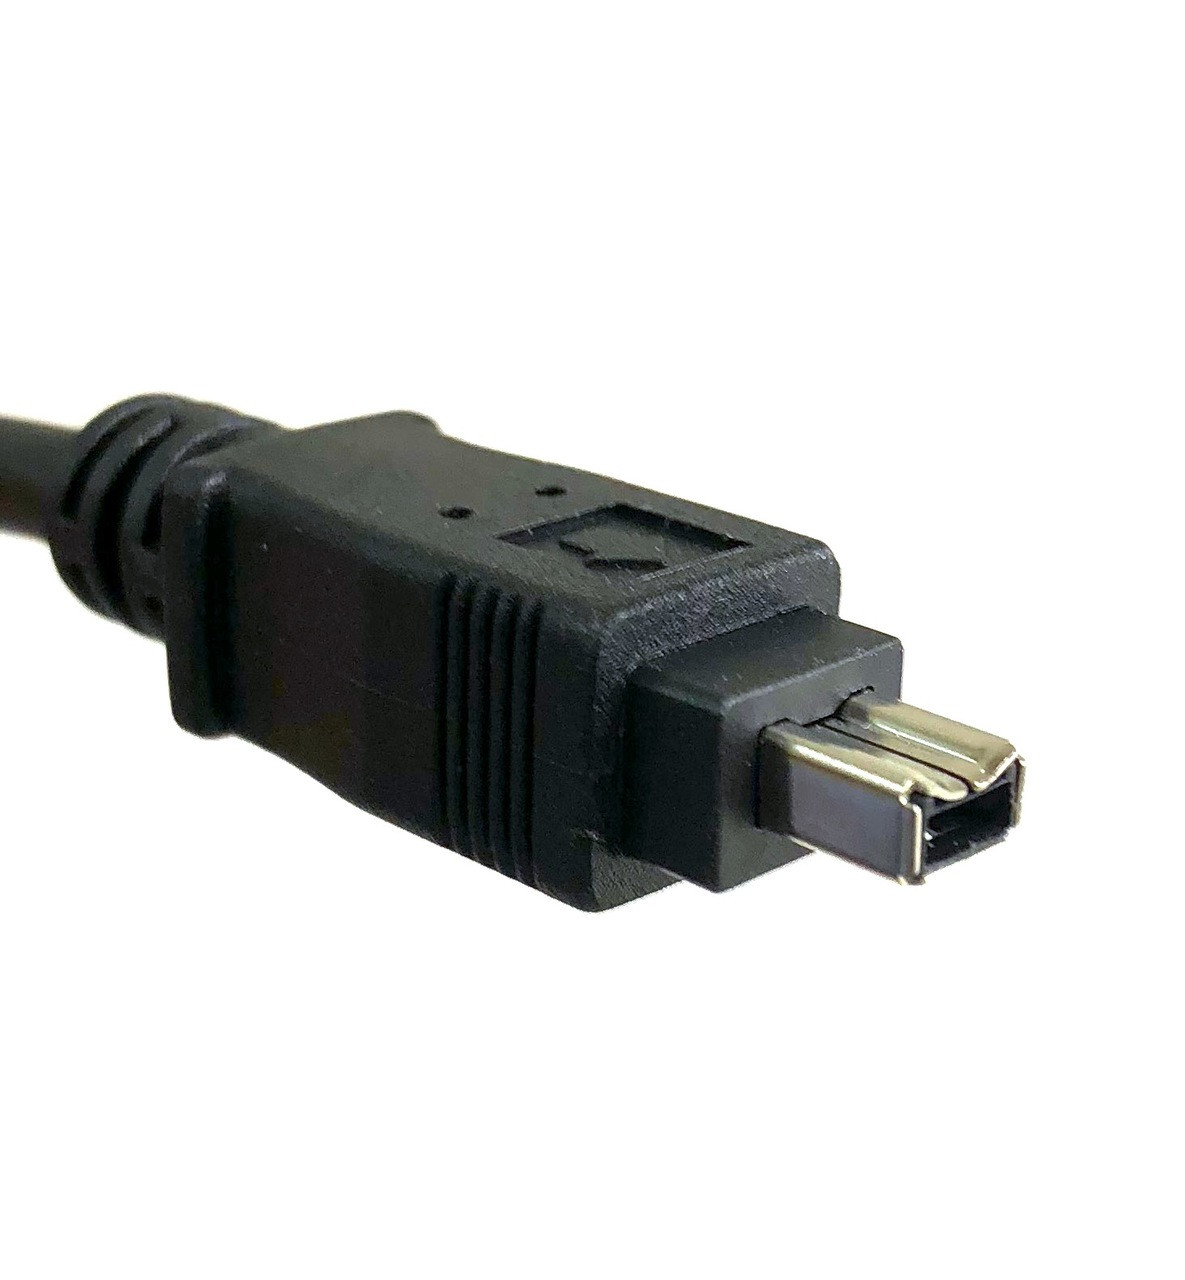 IEEE 1394 Firewire Cable 6P/4P - 6ft